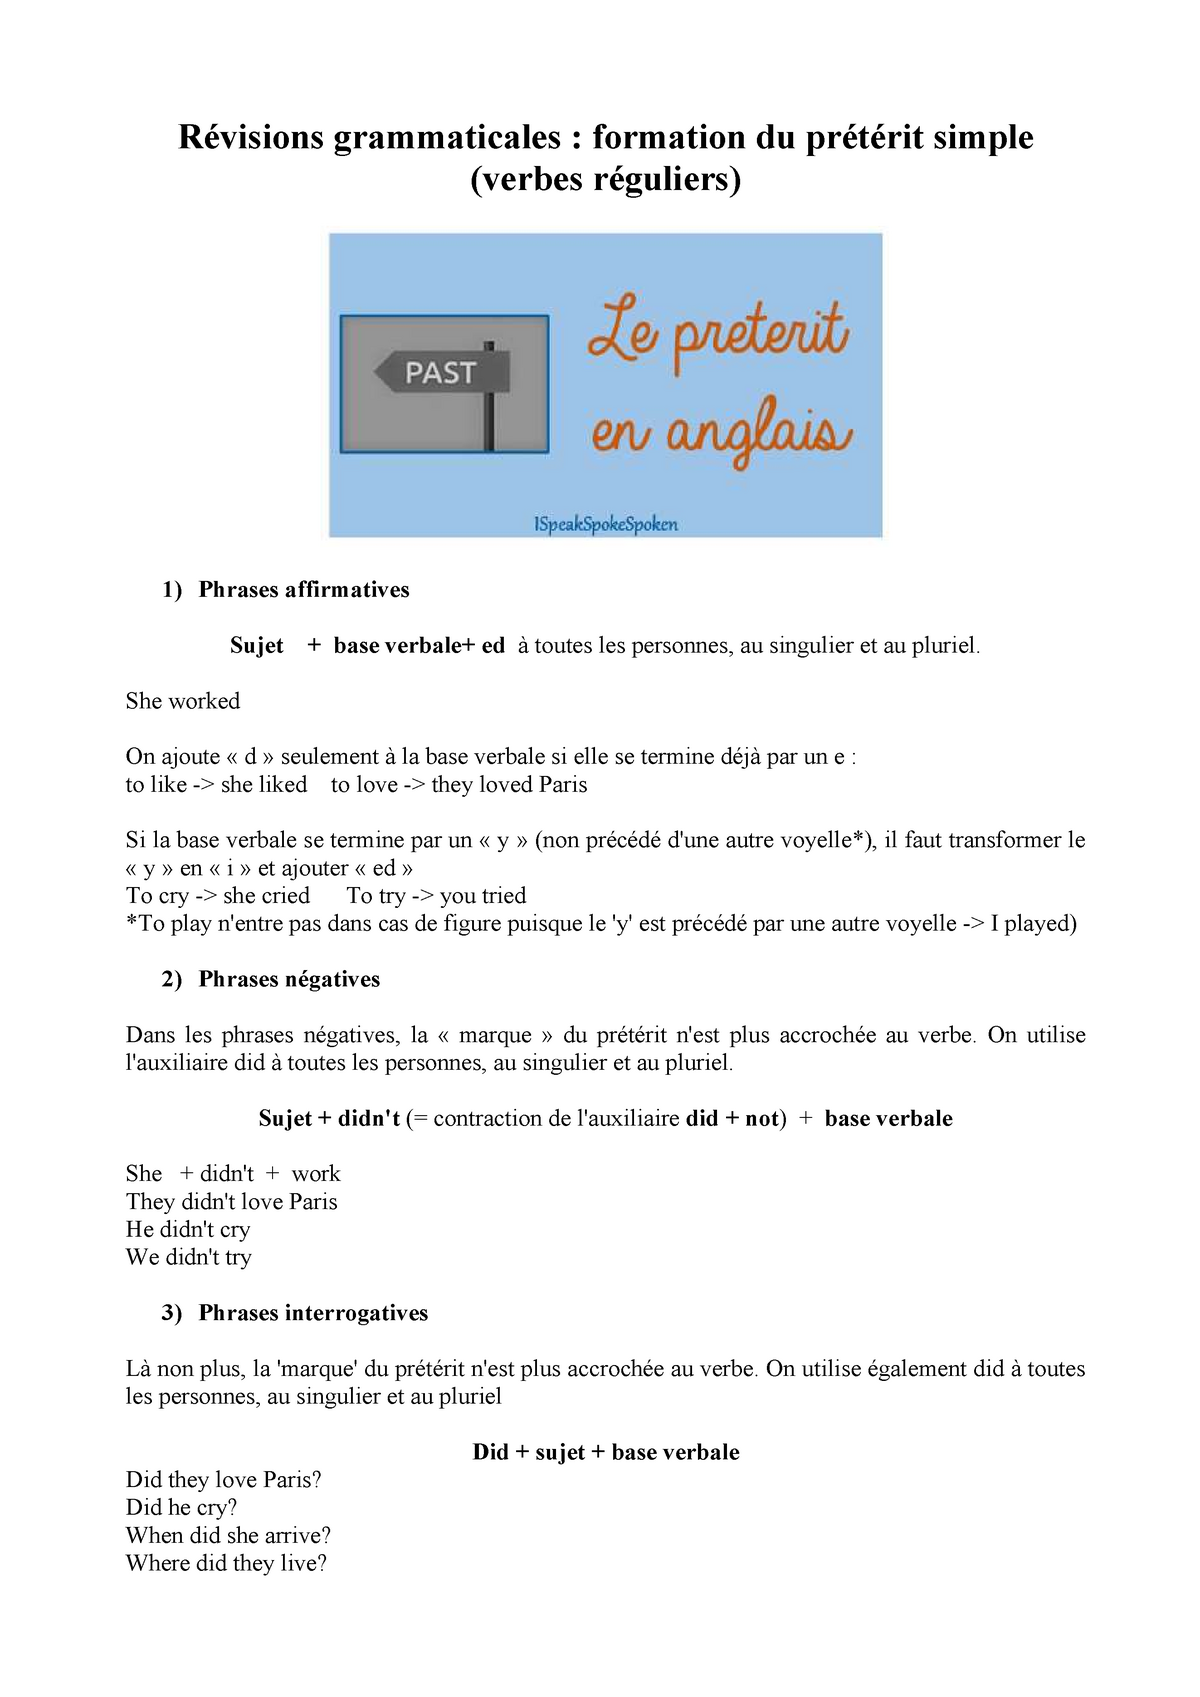 Revisions Grammaticales Formation Preterit Verbes Reguliers Visions Grammaticales Formation Du Pr Rit Simple Verbes Guliers Phrases Affirmatives Sujet Base Studocu